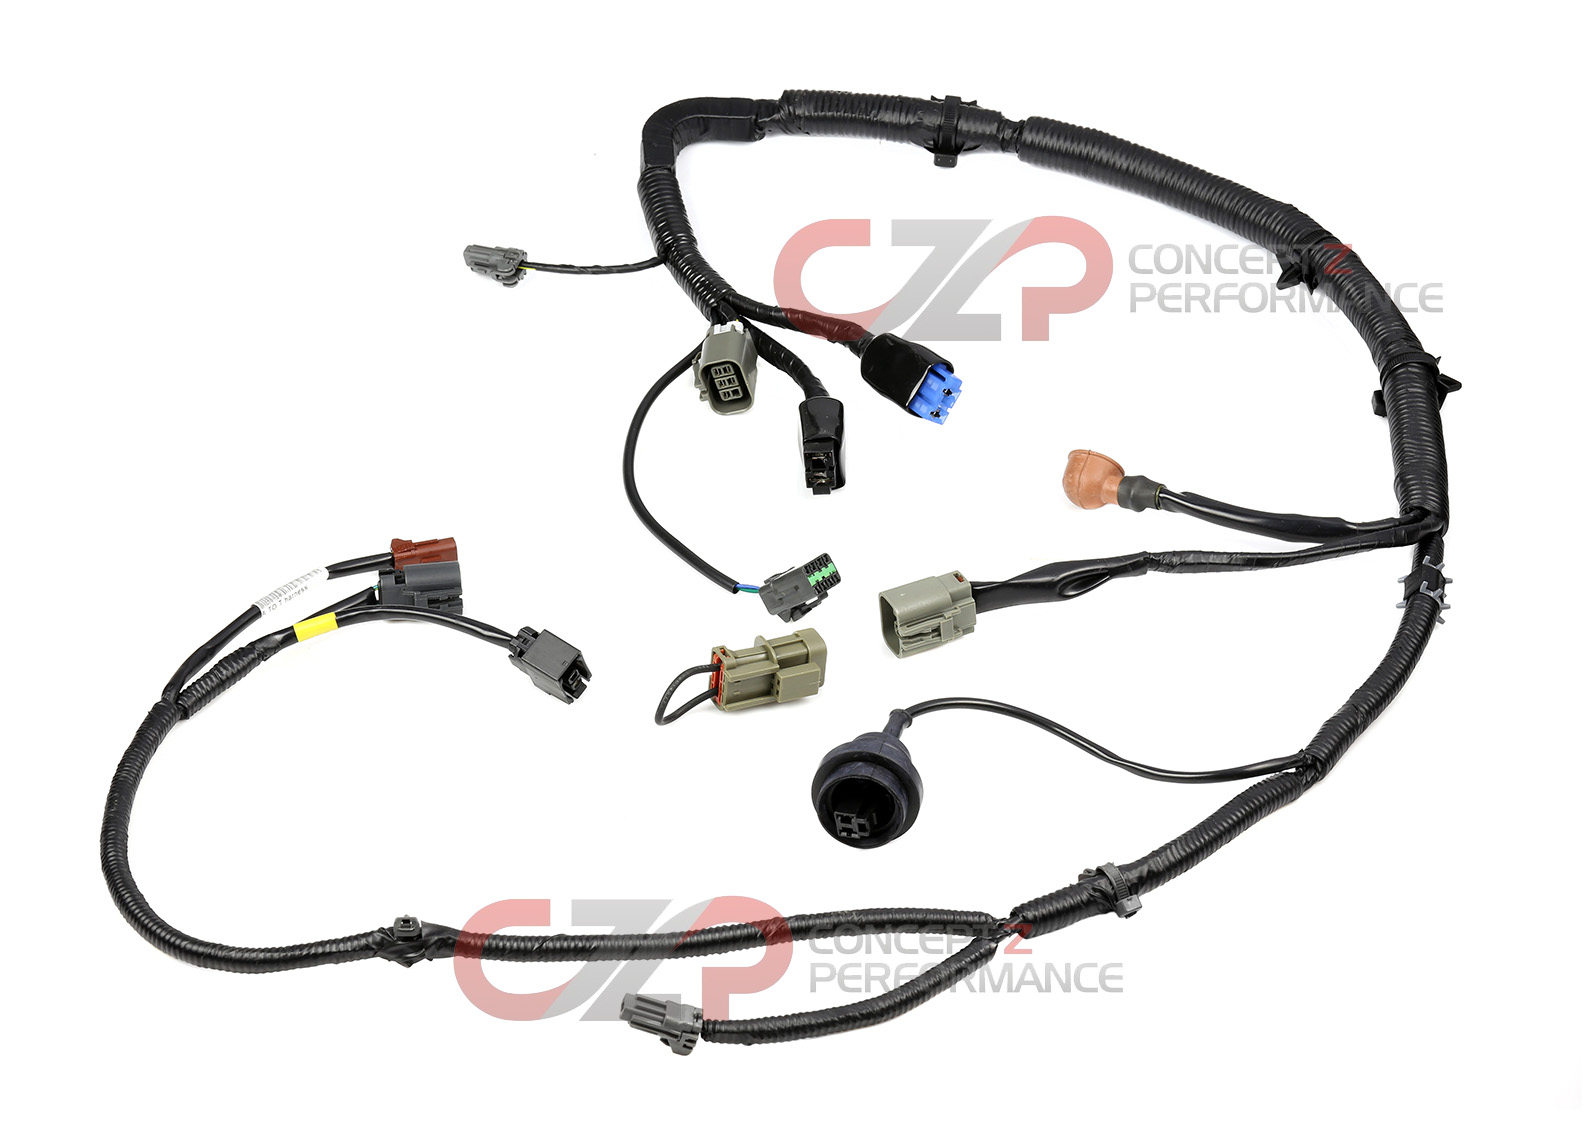 main wiring specialties alternator to transmission harness automatic at alternator wire harness connector at nearapp.co